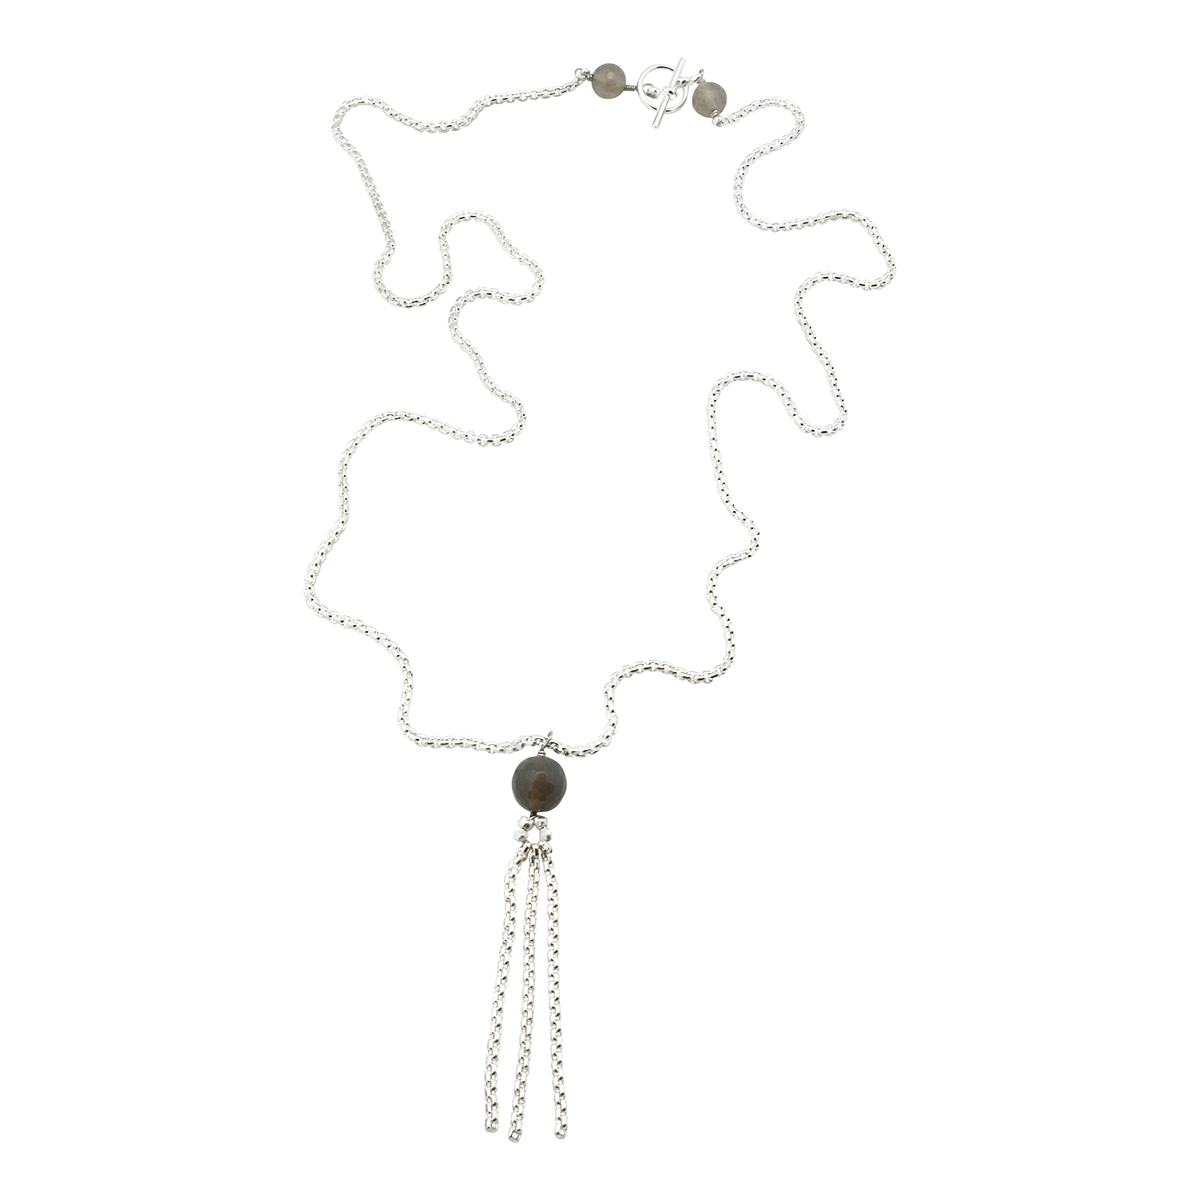 silver chain fringe pendant with faceted grey agate stones